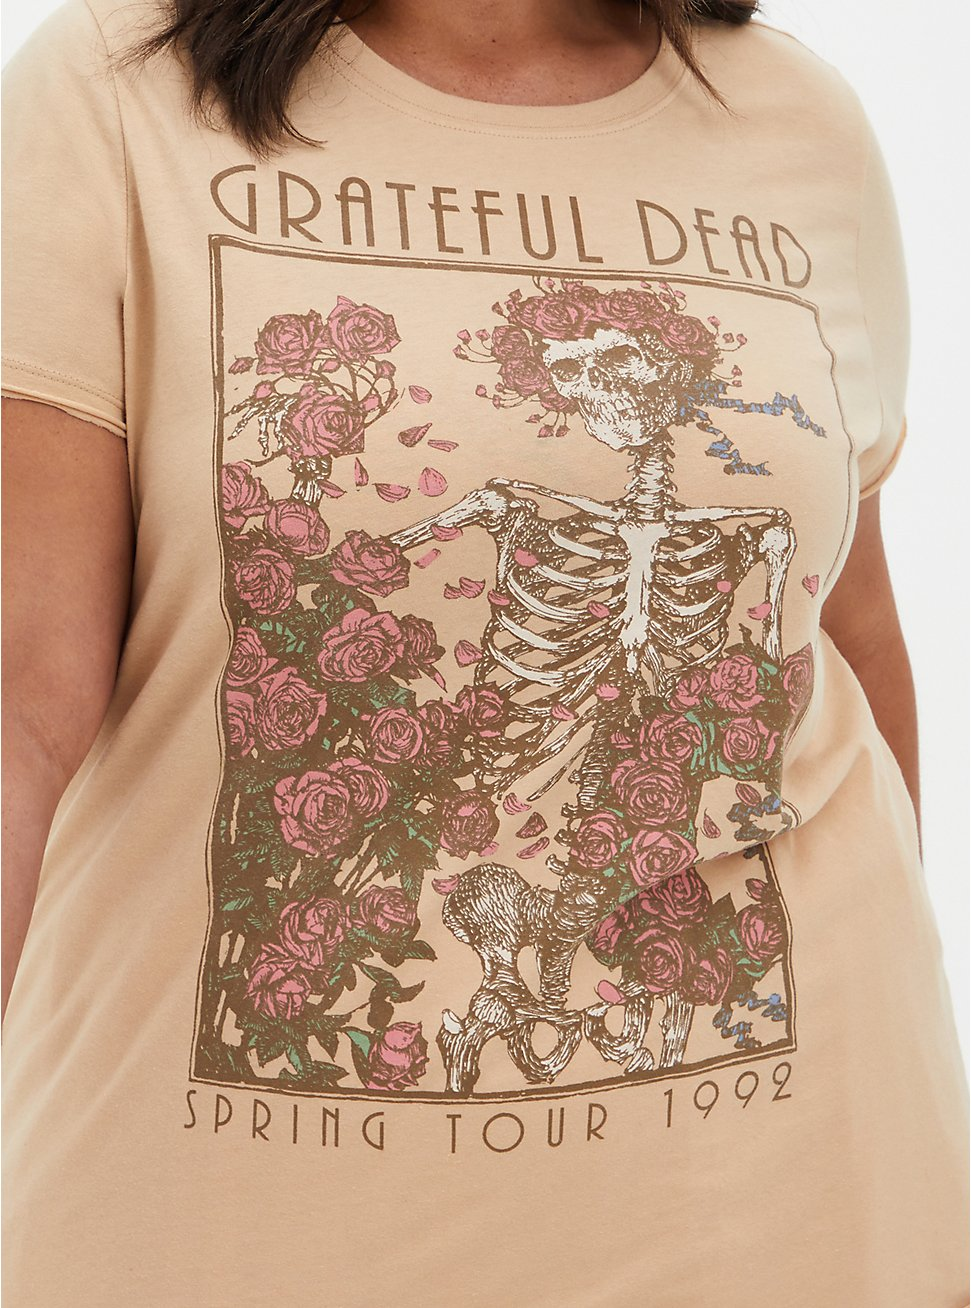 Classic Fit Crew Tee - Grateful Dead Pink , PINK, hi-res